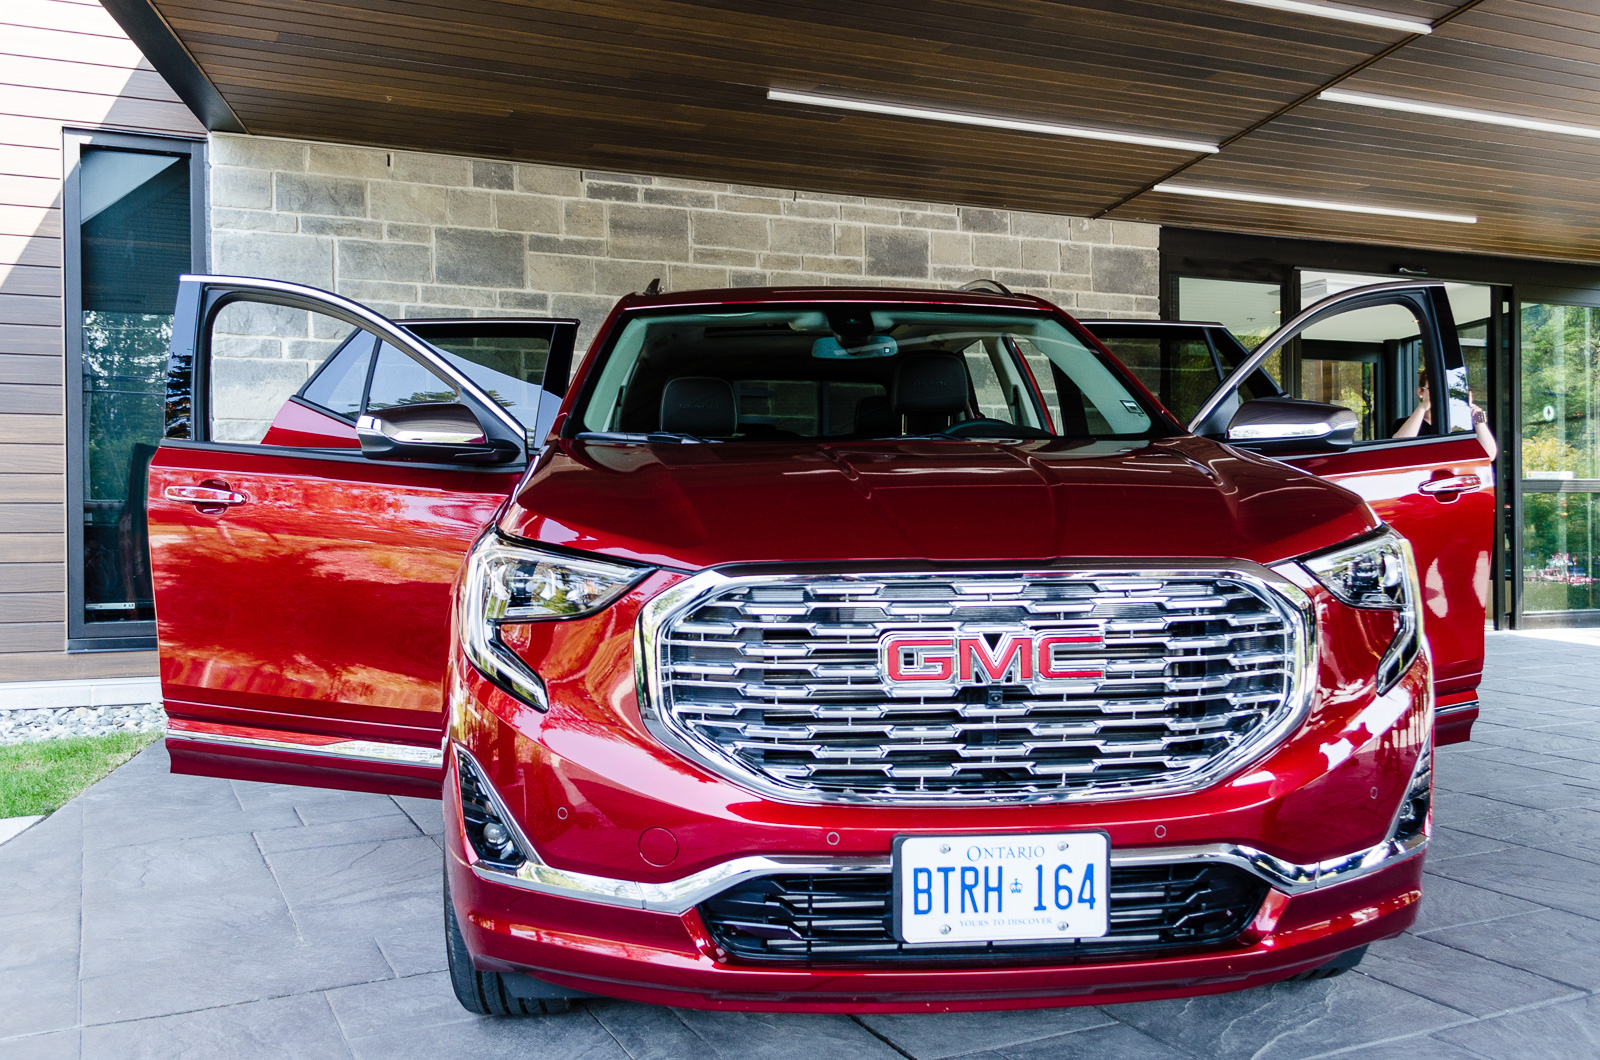 2018 Gmc Terrain Test Drive In Lac Beauport Quebec